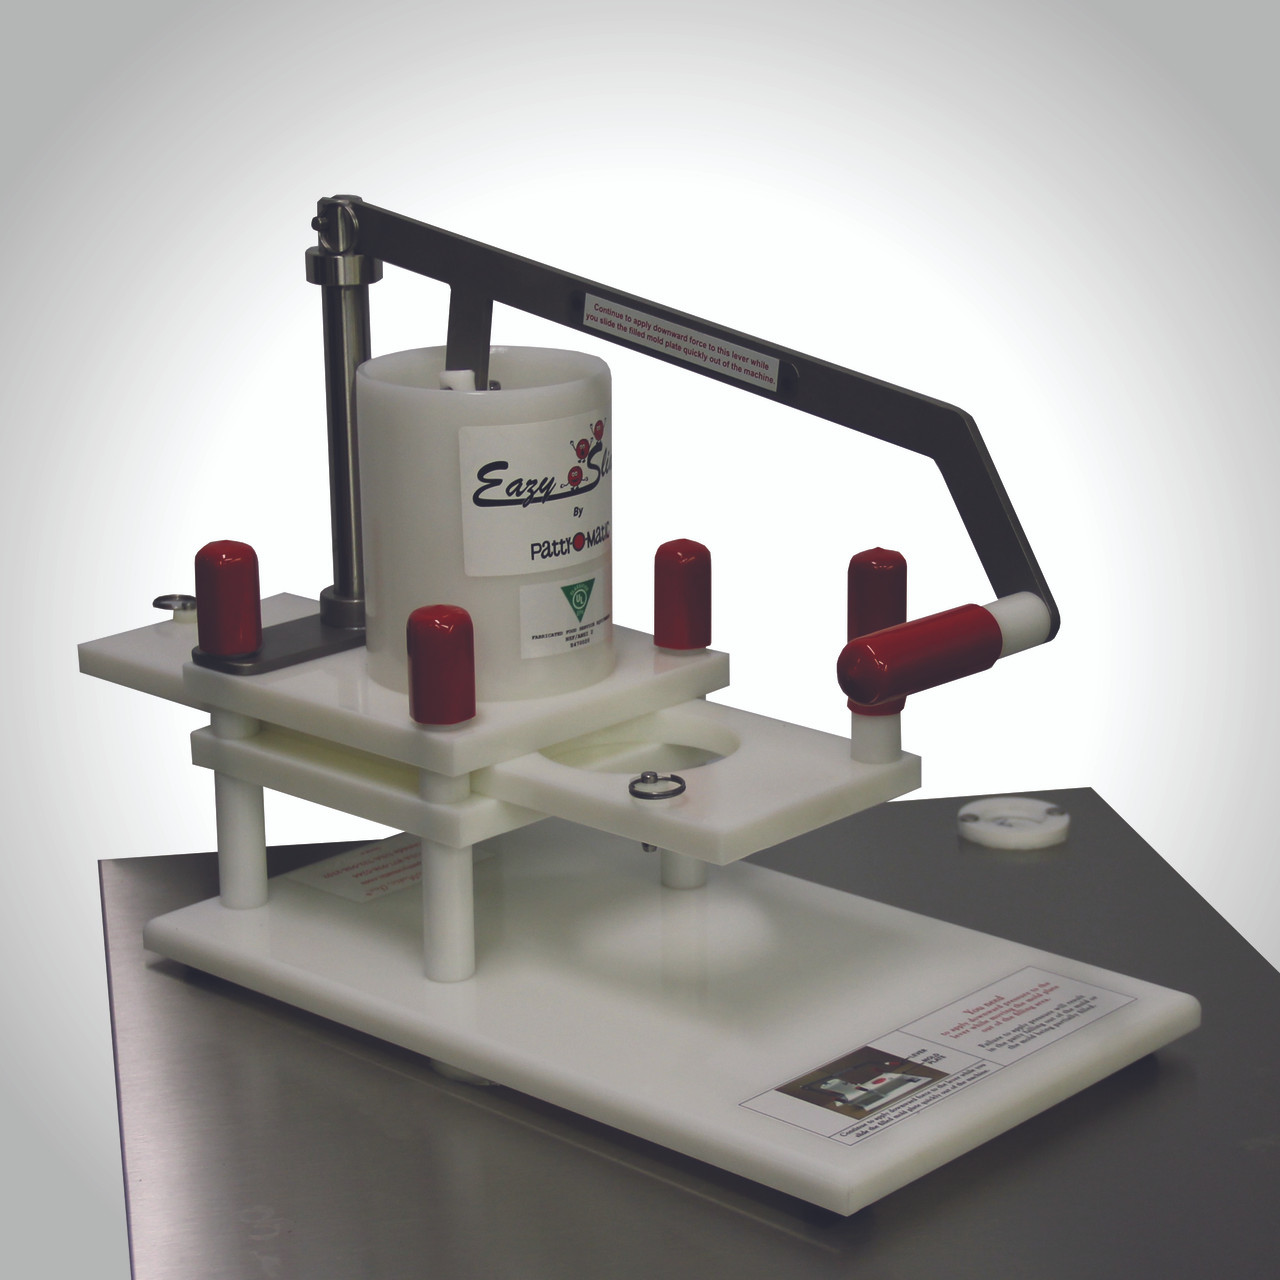 Patty-O-Matic - Easy Slider - UL/EPH Classified - NSF/ANSI 8 Standards